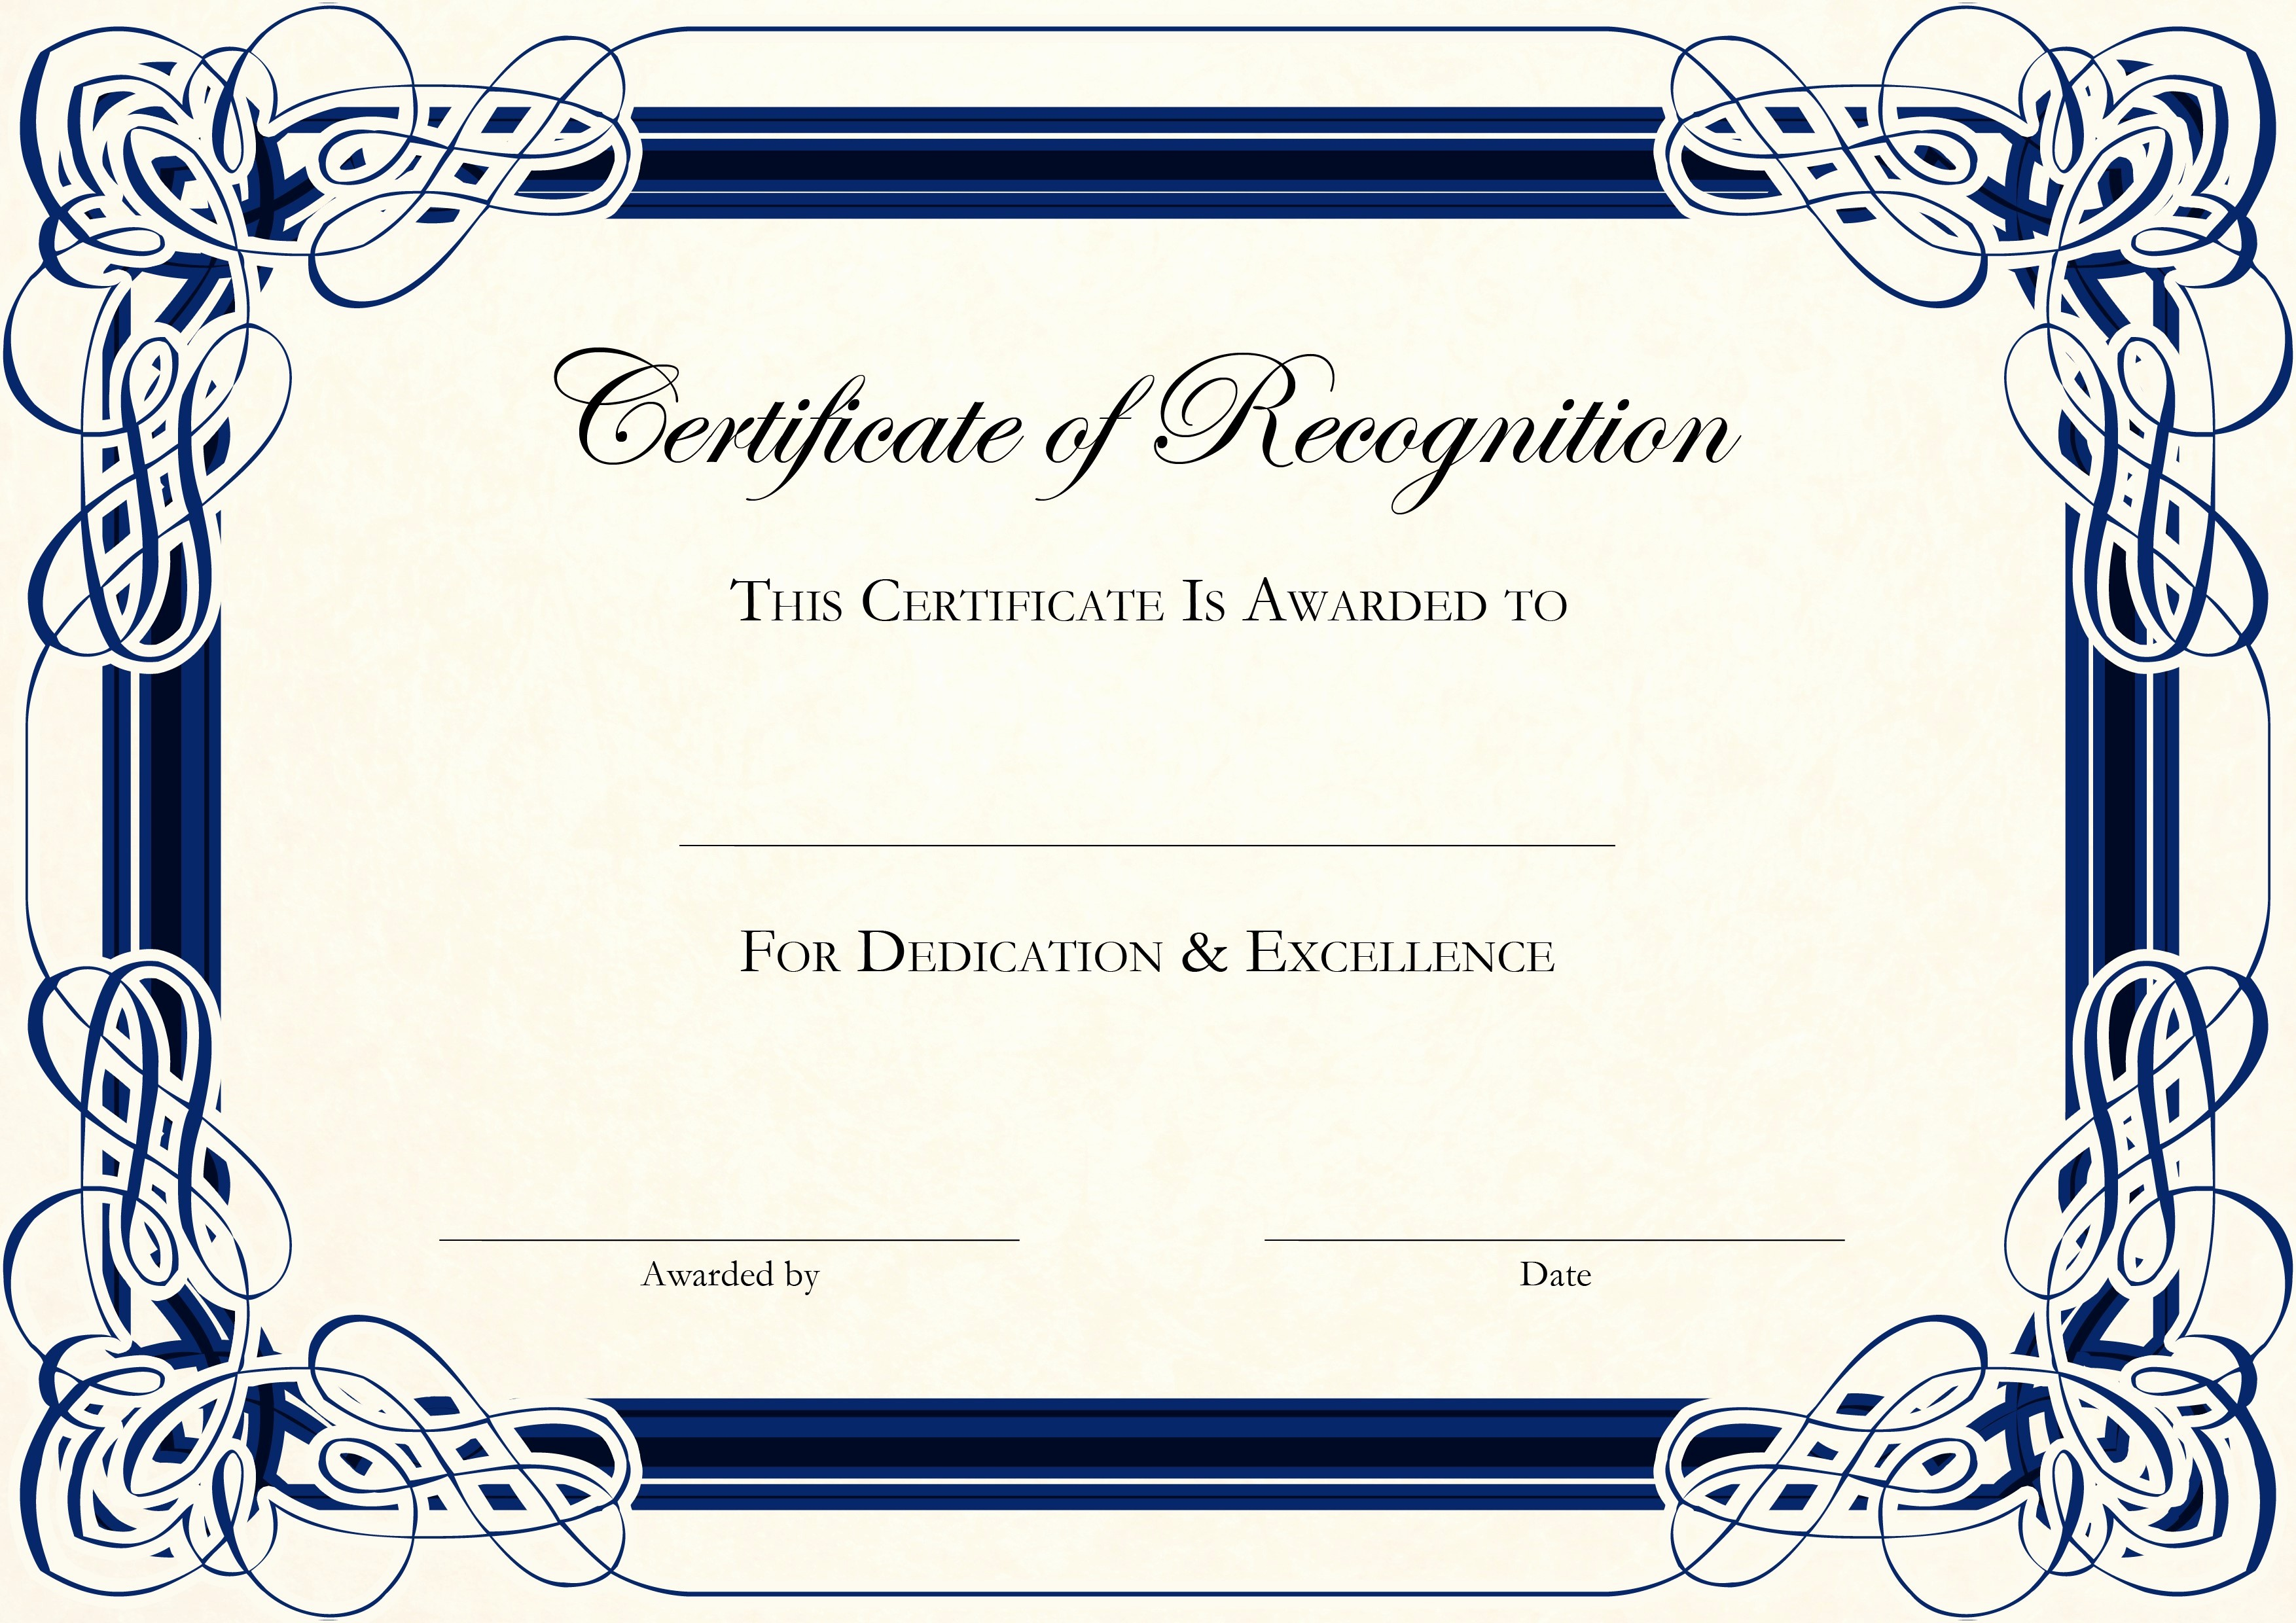 Word Template Certificate Of Recognition Awesome Free Certificate Templates for Word